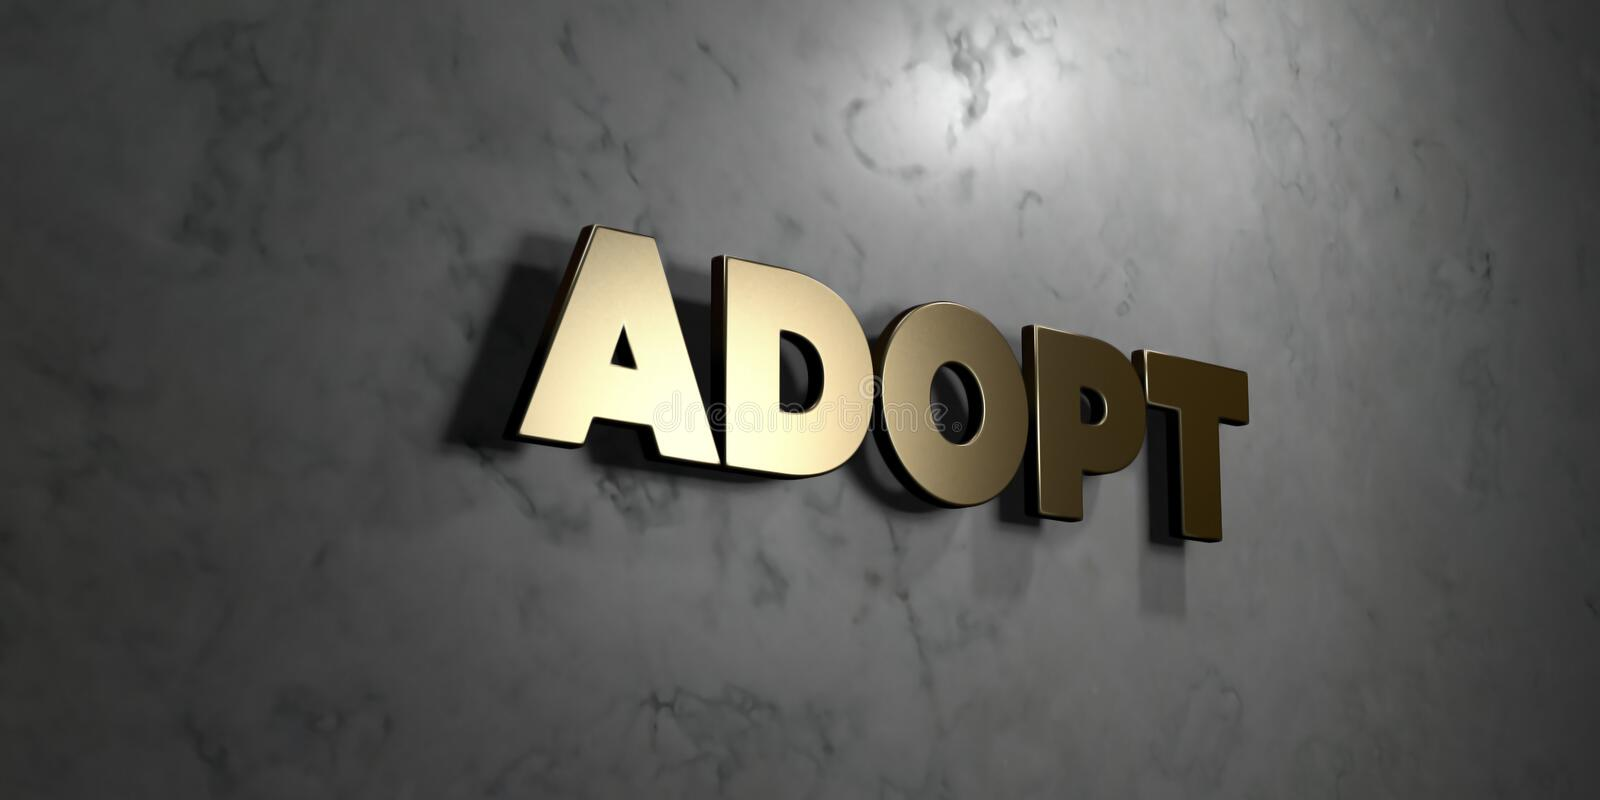 Adopt - Gold sign mounted on glossy marble wall - 3D rendered royalty free stock illustration. This image can be used for an online website banner ad or a stock illustration